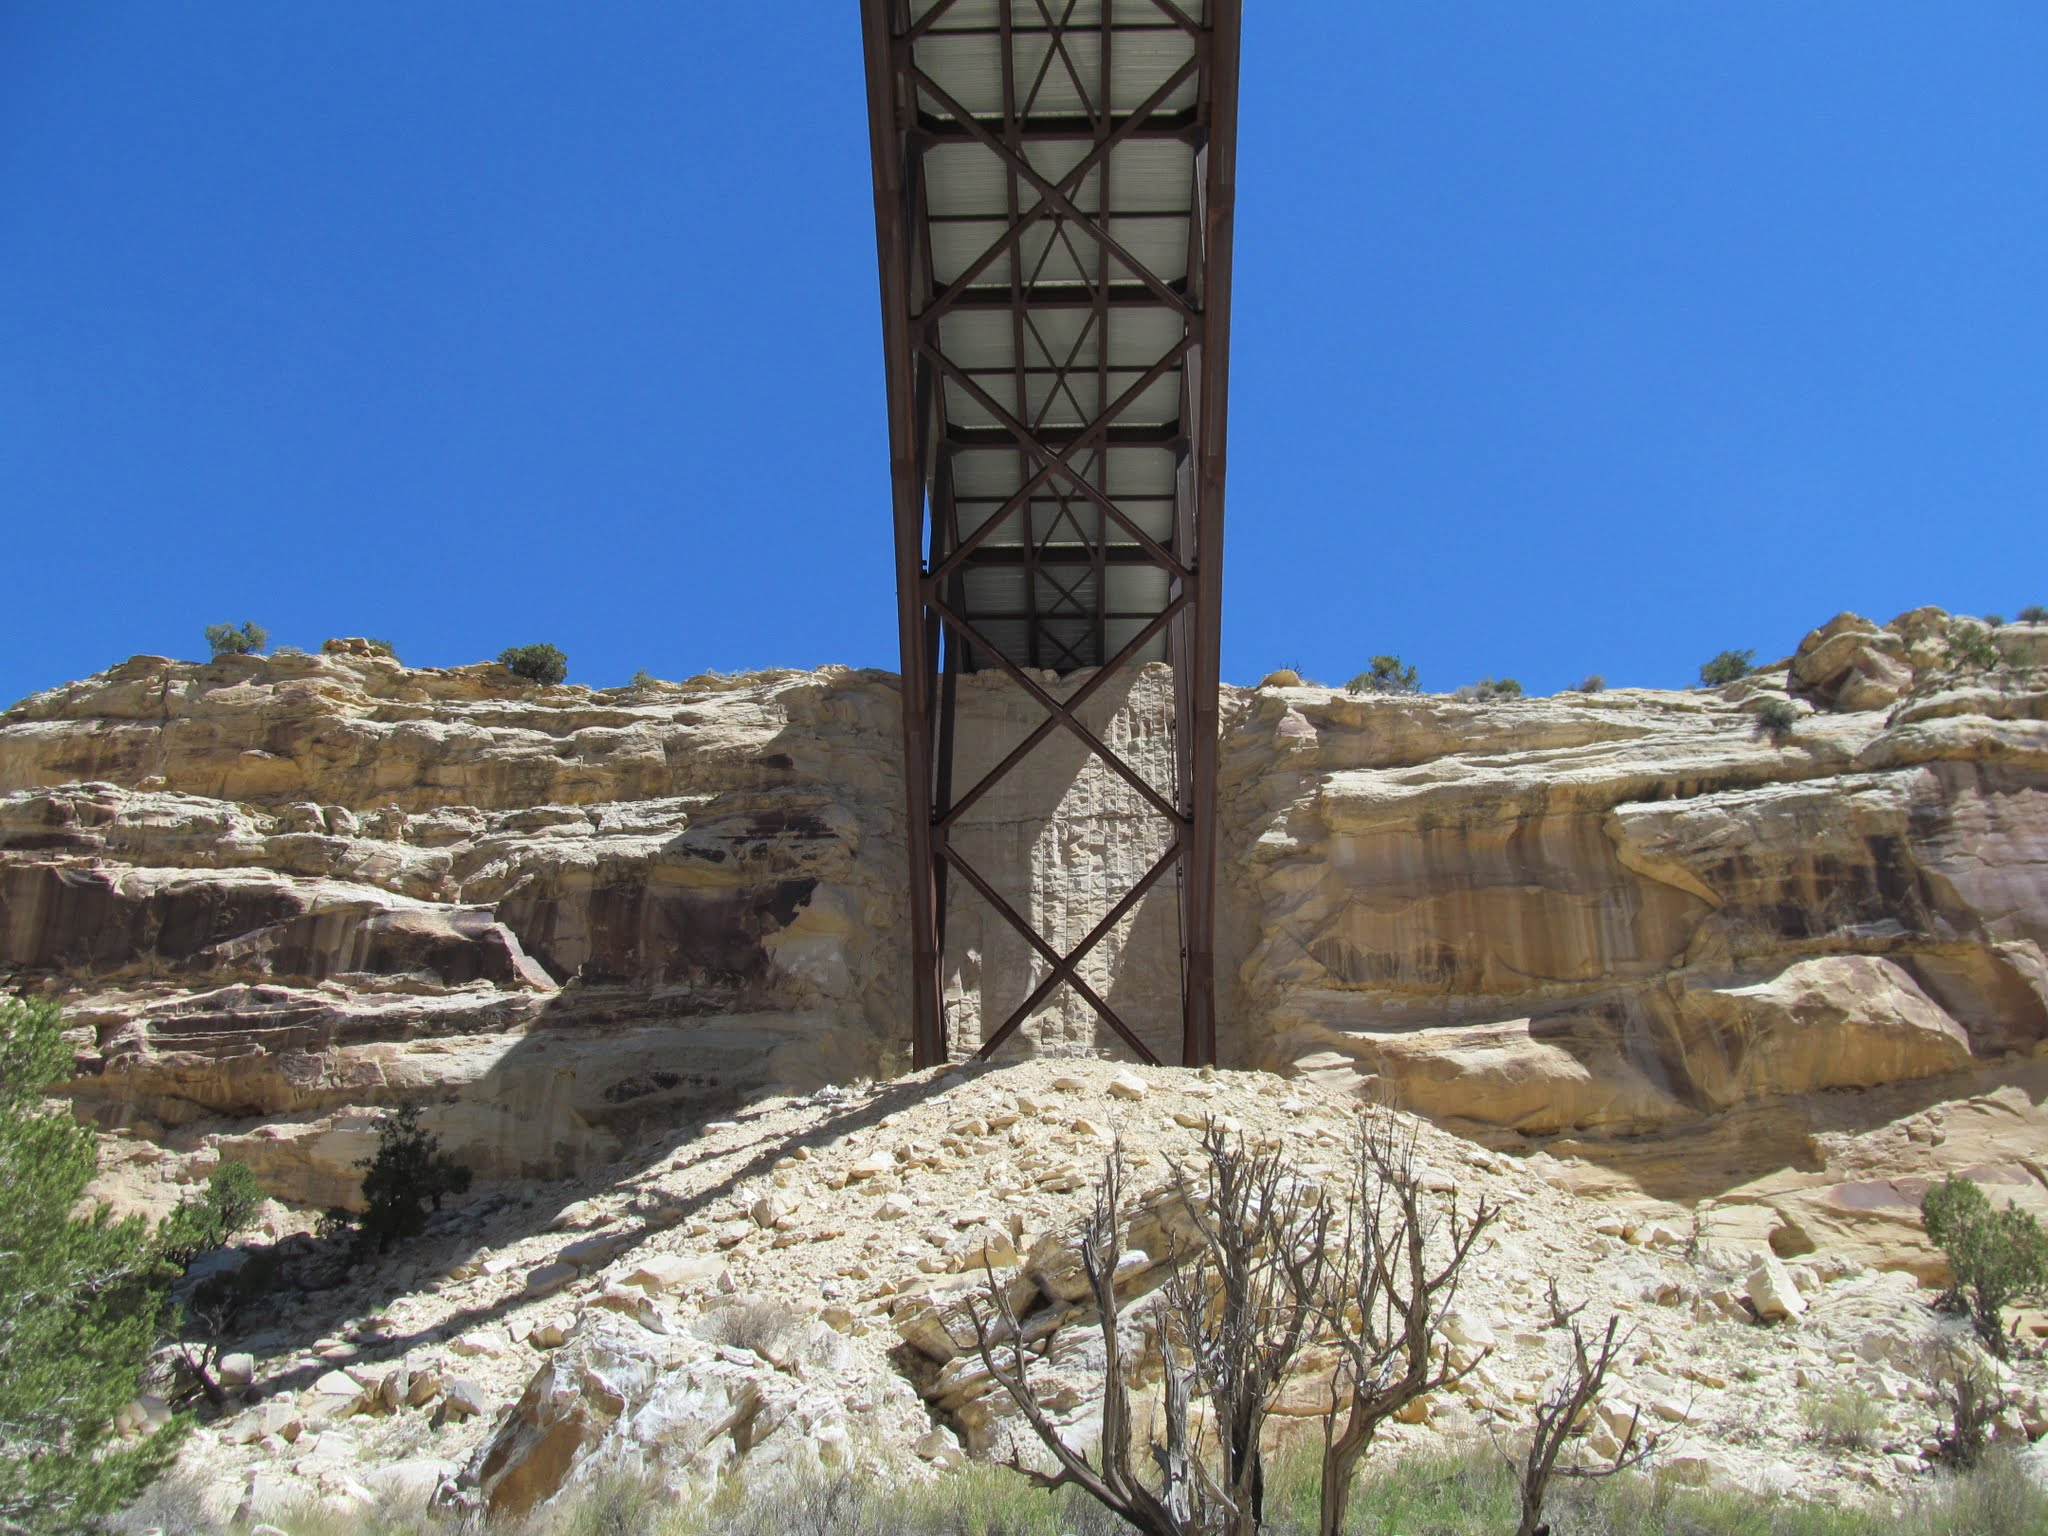 Photo: I-70 bridge over Eagle Canyon